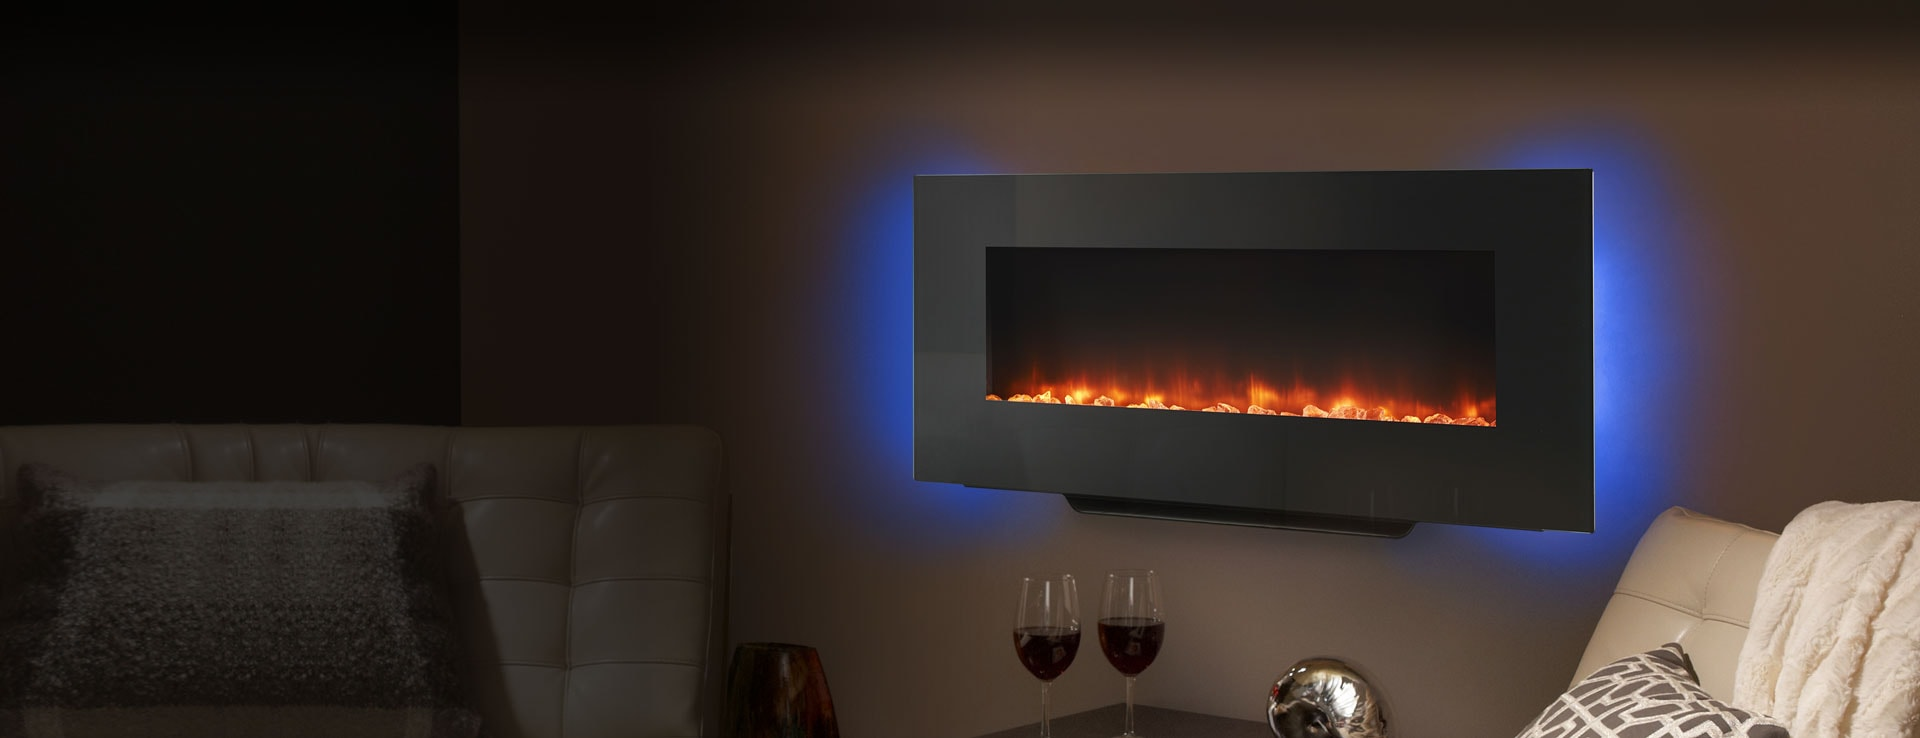 <p>SimpliFire Wall-Mount Electric Fireplace</p>